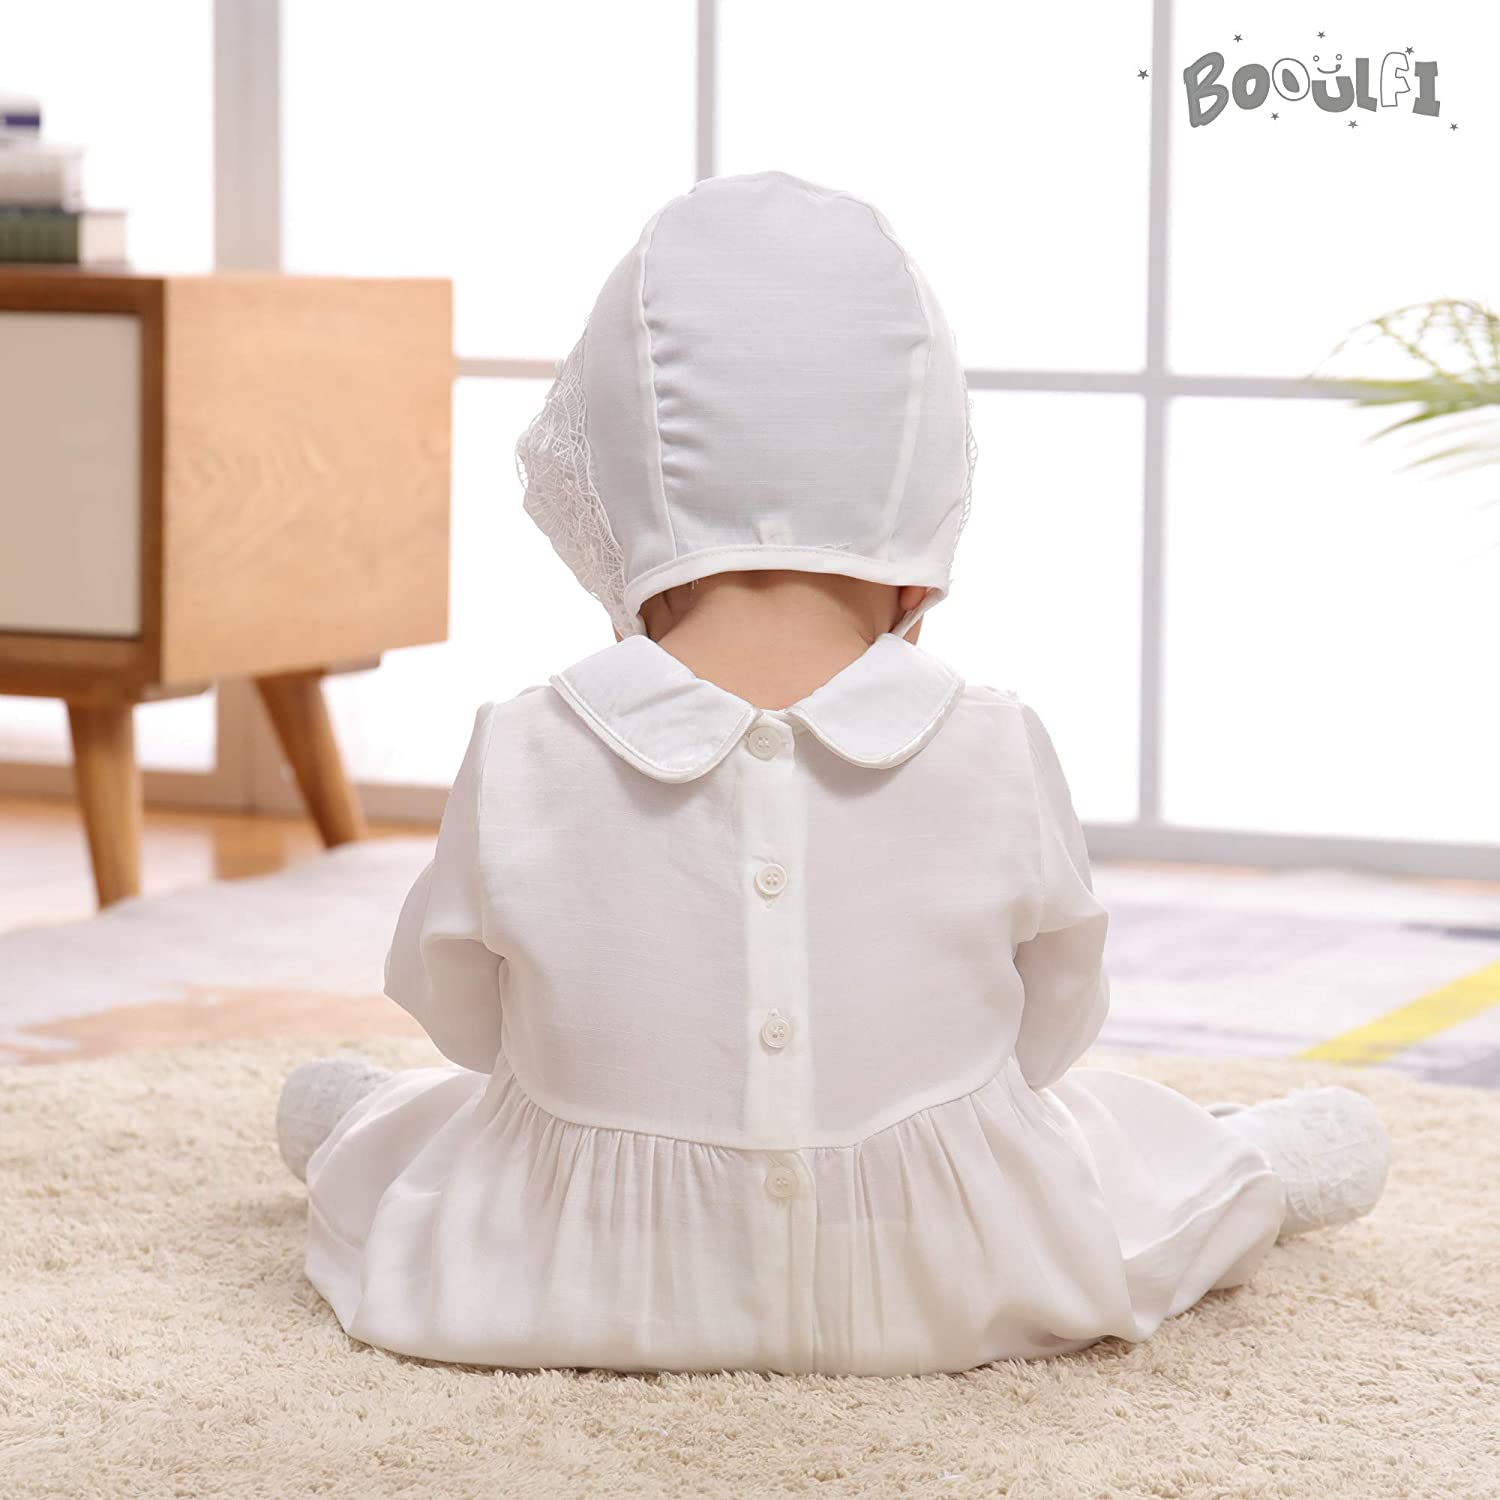 Booulfi Baby Boys 2//3 Pcs Set Christening Baptism Outfits Long Sleeve Suit Romper Set,Cross Embroidery